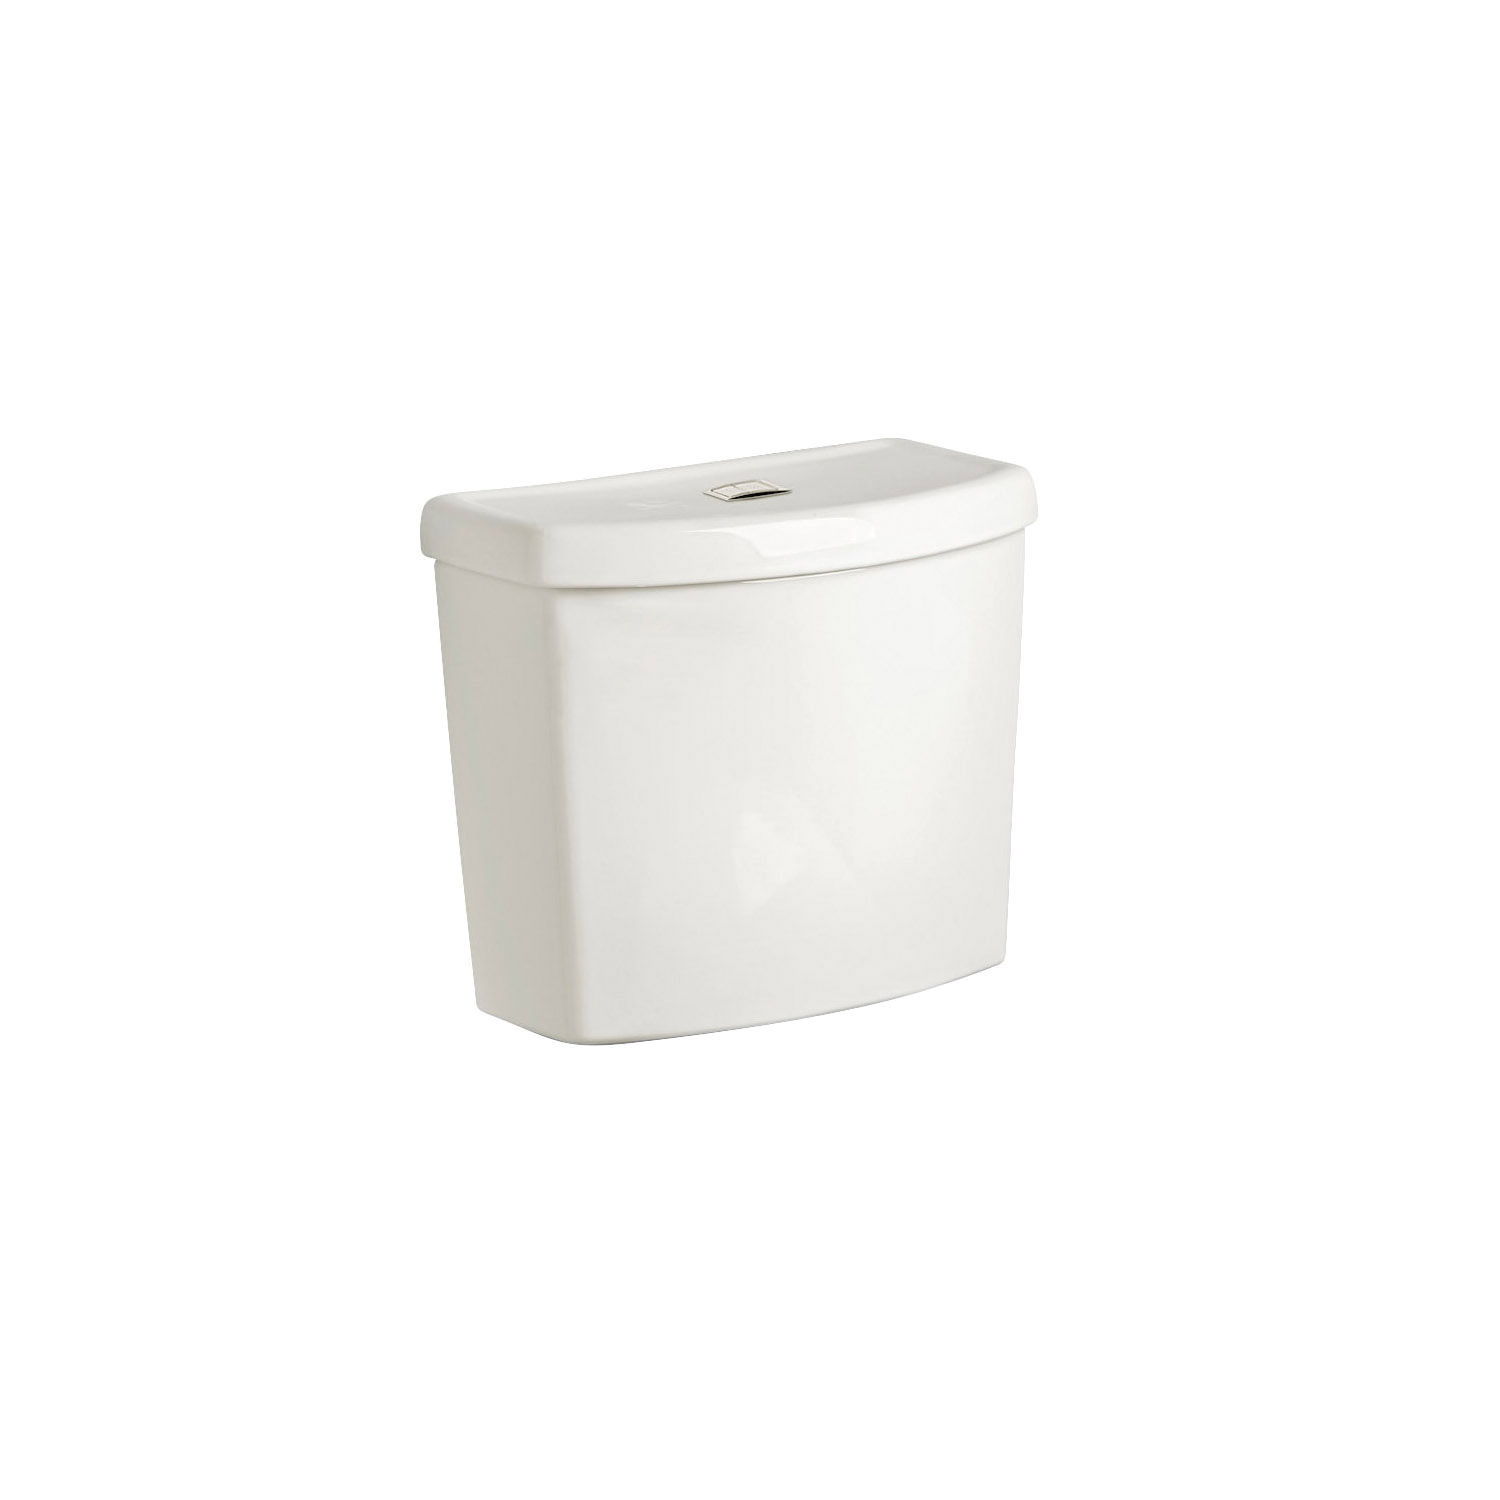 American Standard 4000204.020 Dual-Flush Complete Toilet Tank, Studio™ Right Height™, 1.1/1.6 gpf, 3 in Flush, White, Import